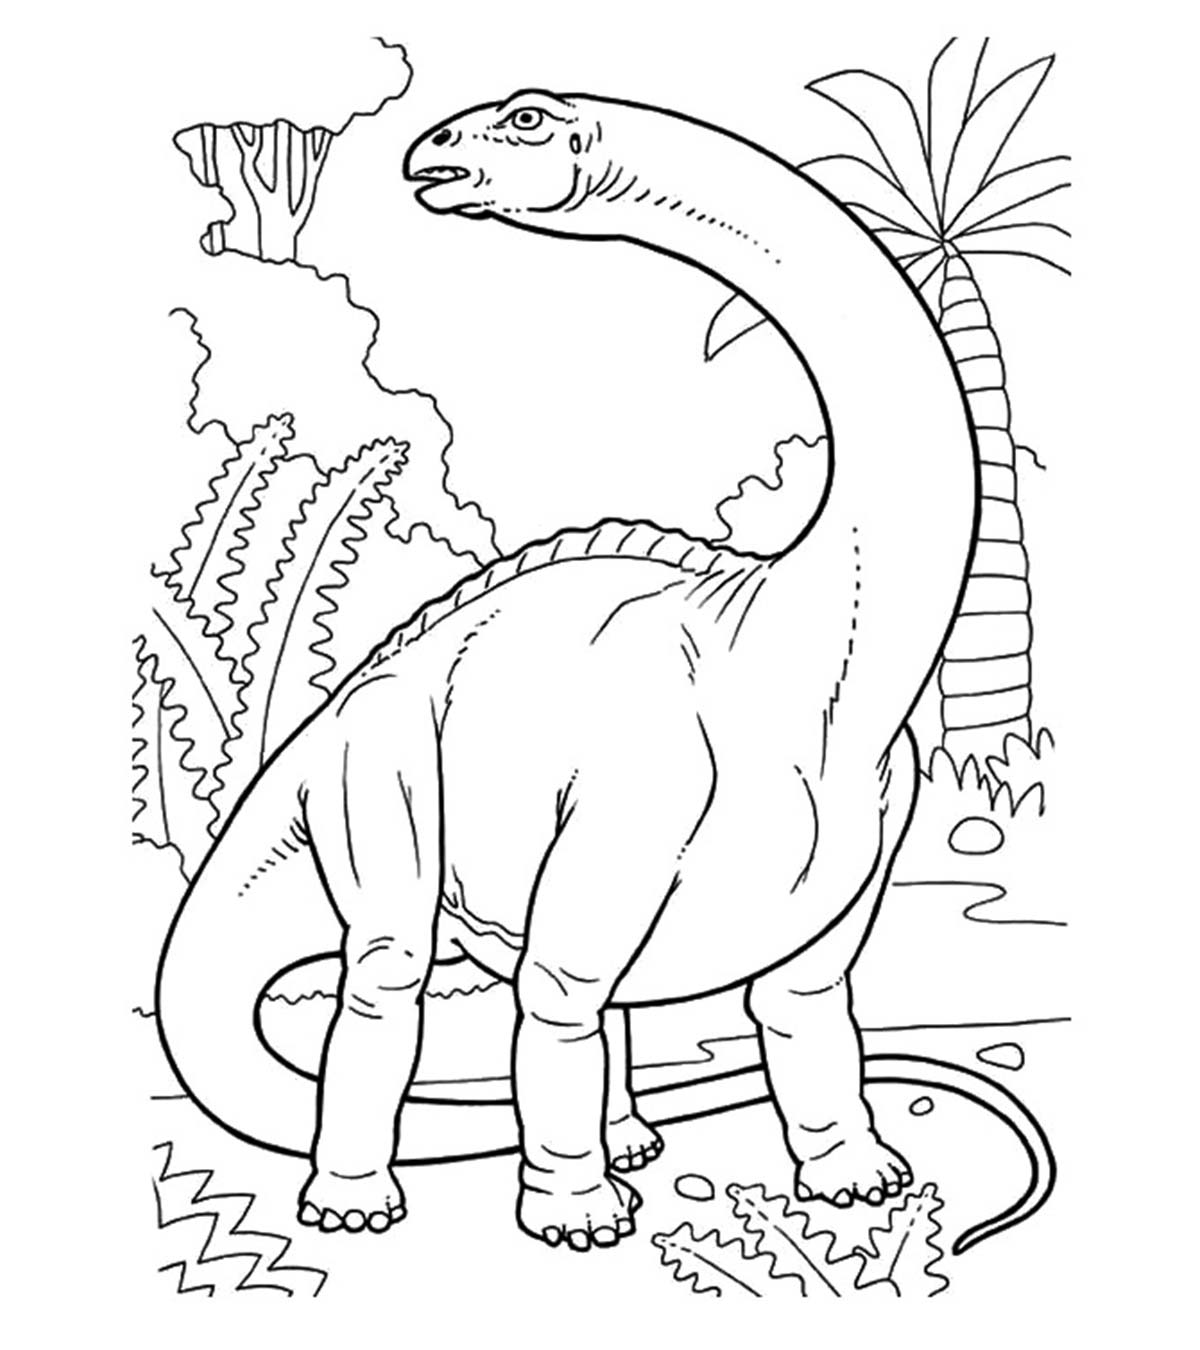 colouring dinosaur pictures dinosaur coloring pages to download and print for free pictures dinosaur colouring